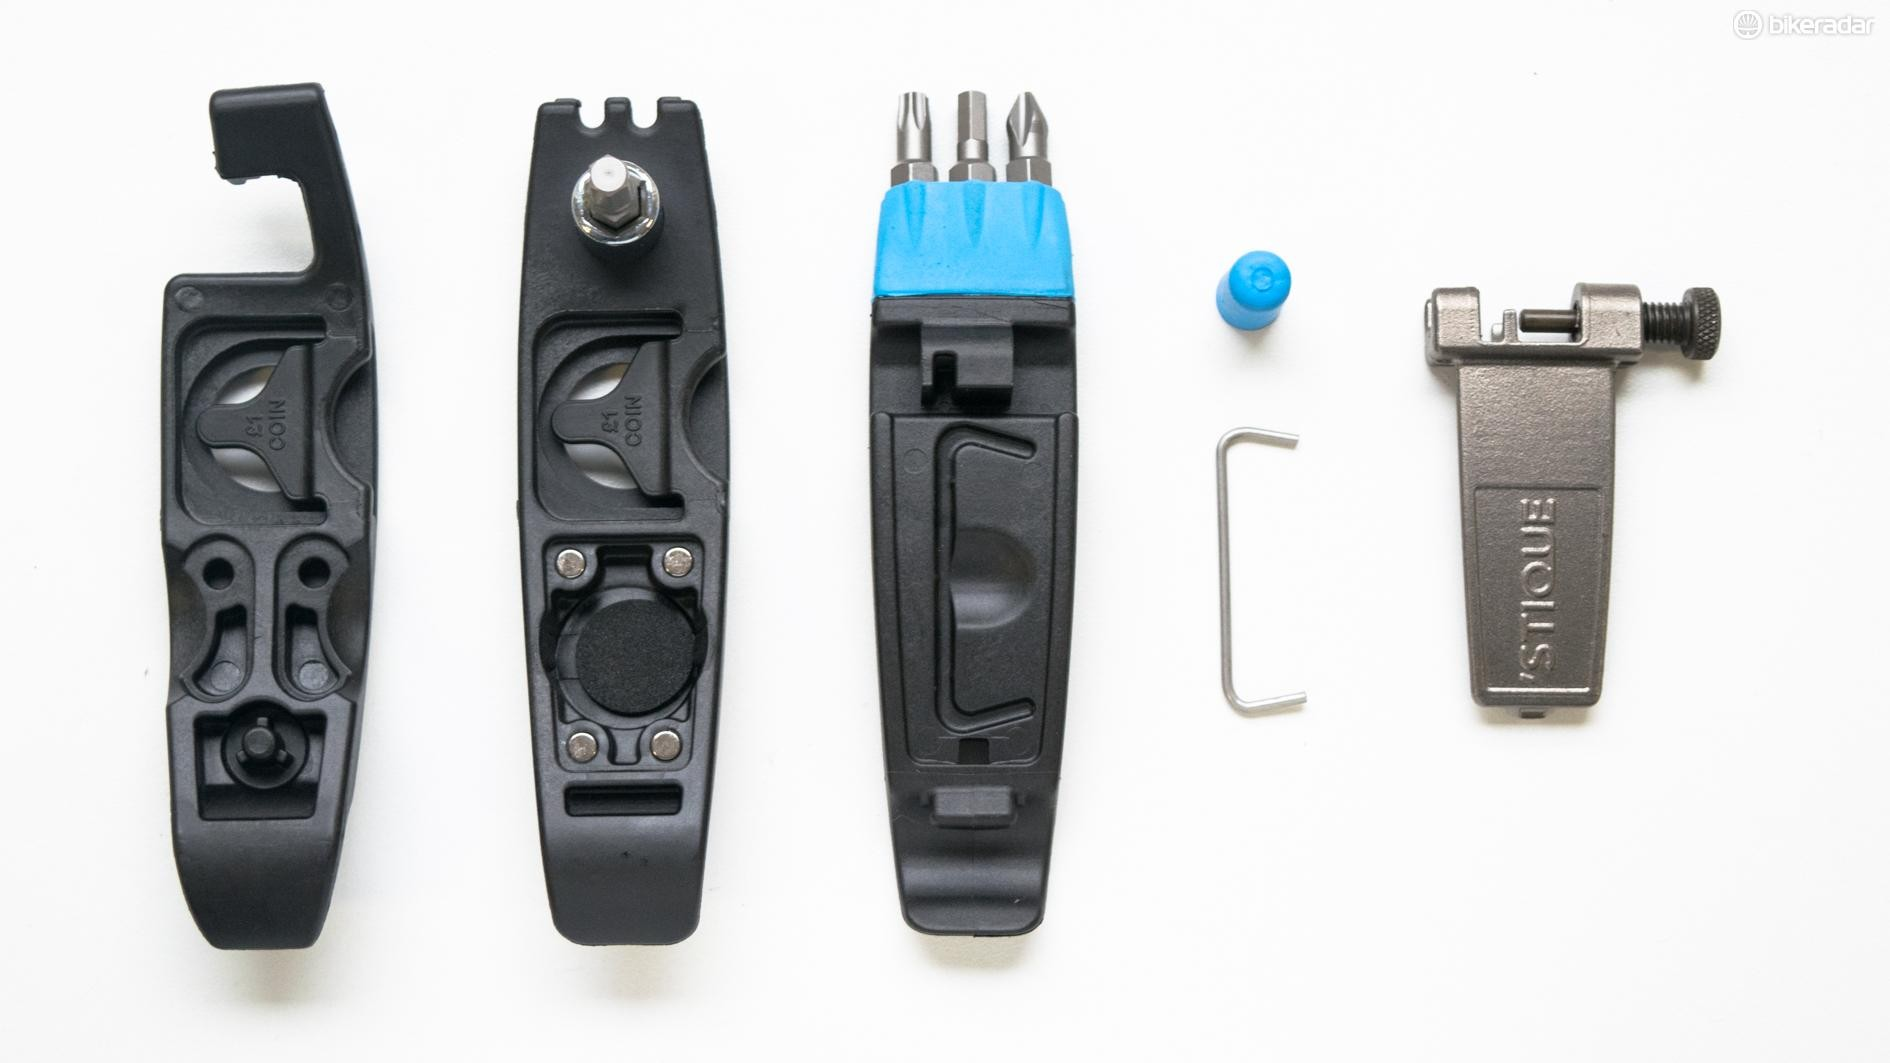 The three levers are held together with small but strong magnets